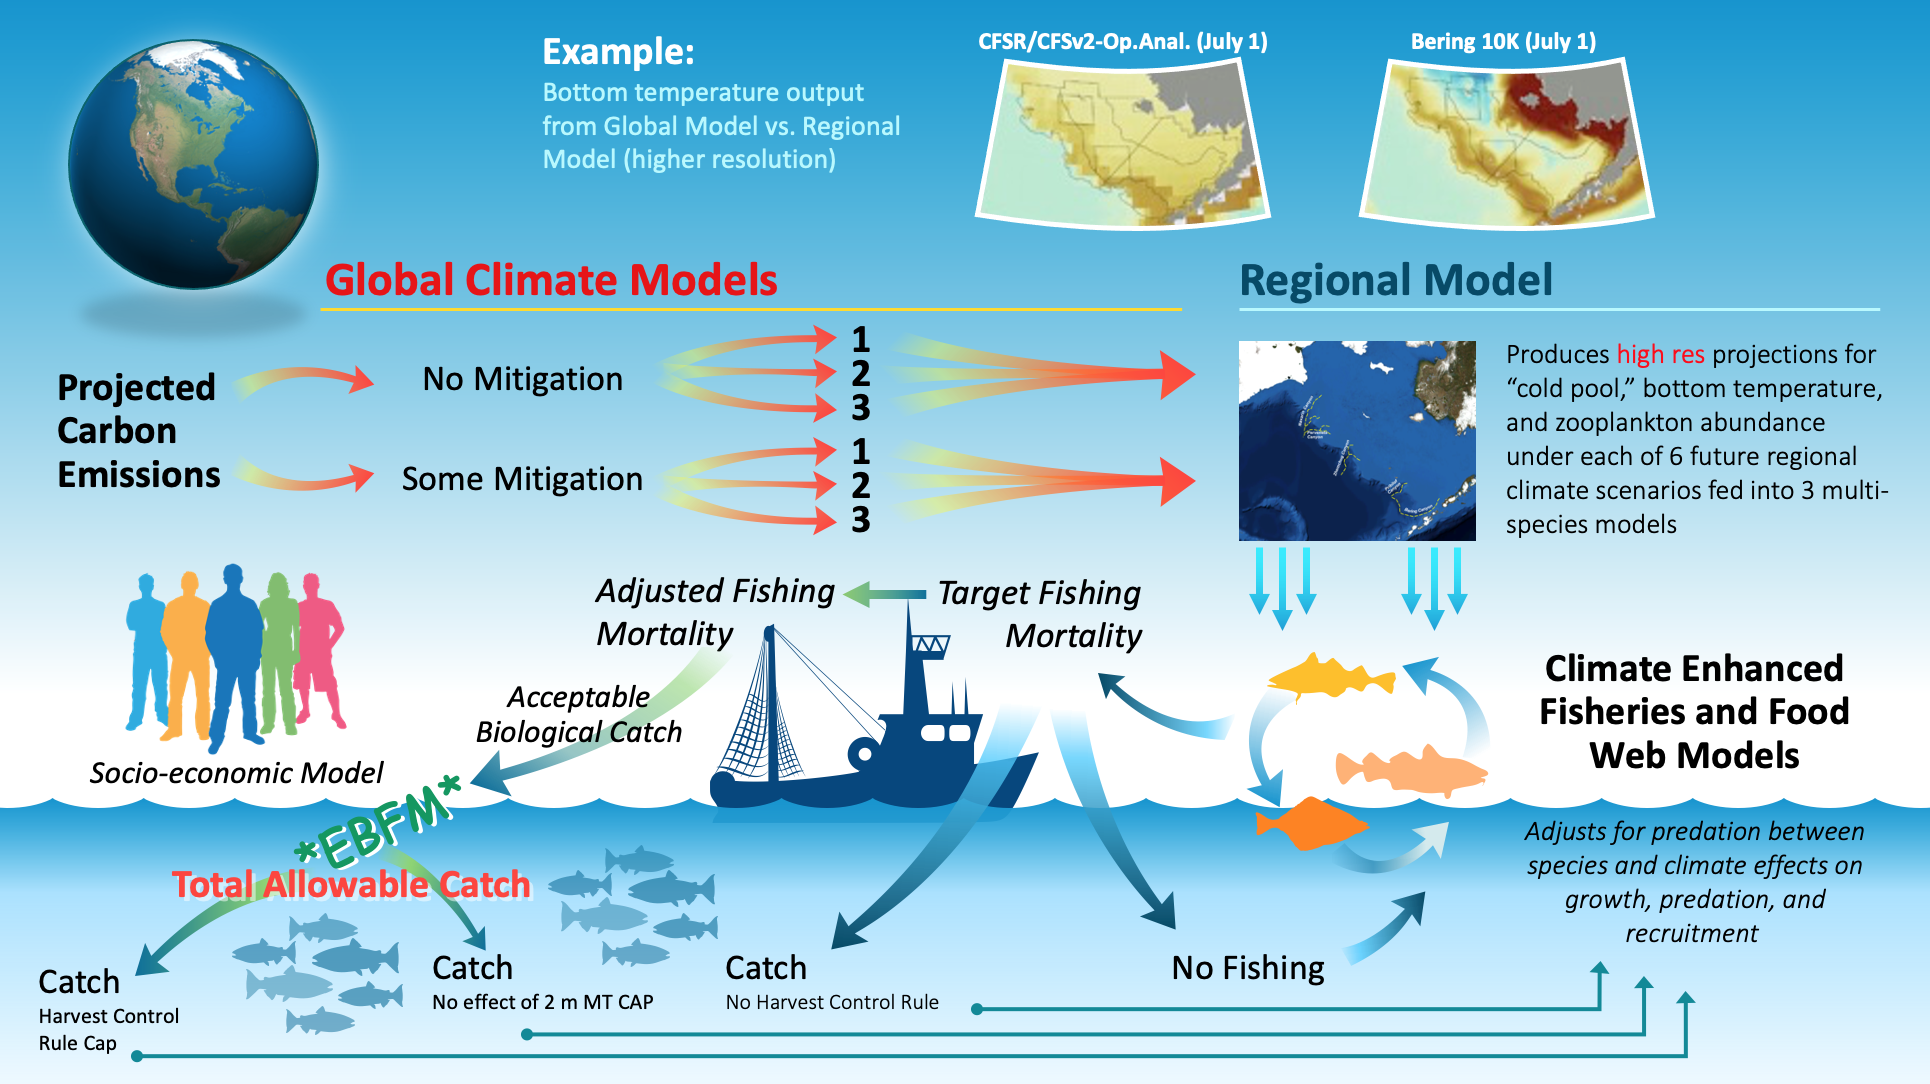 infographic describing climate modeling in Alaska